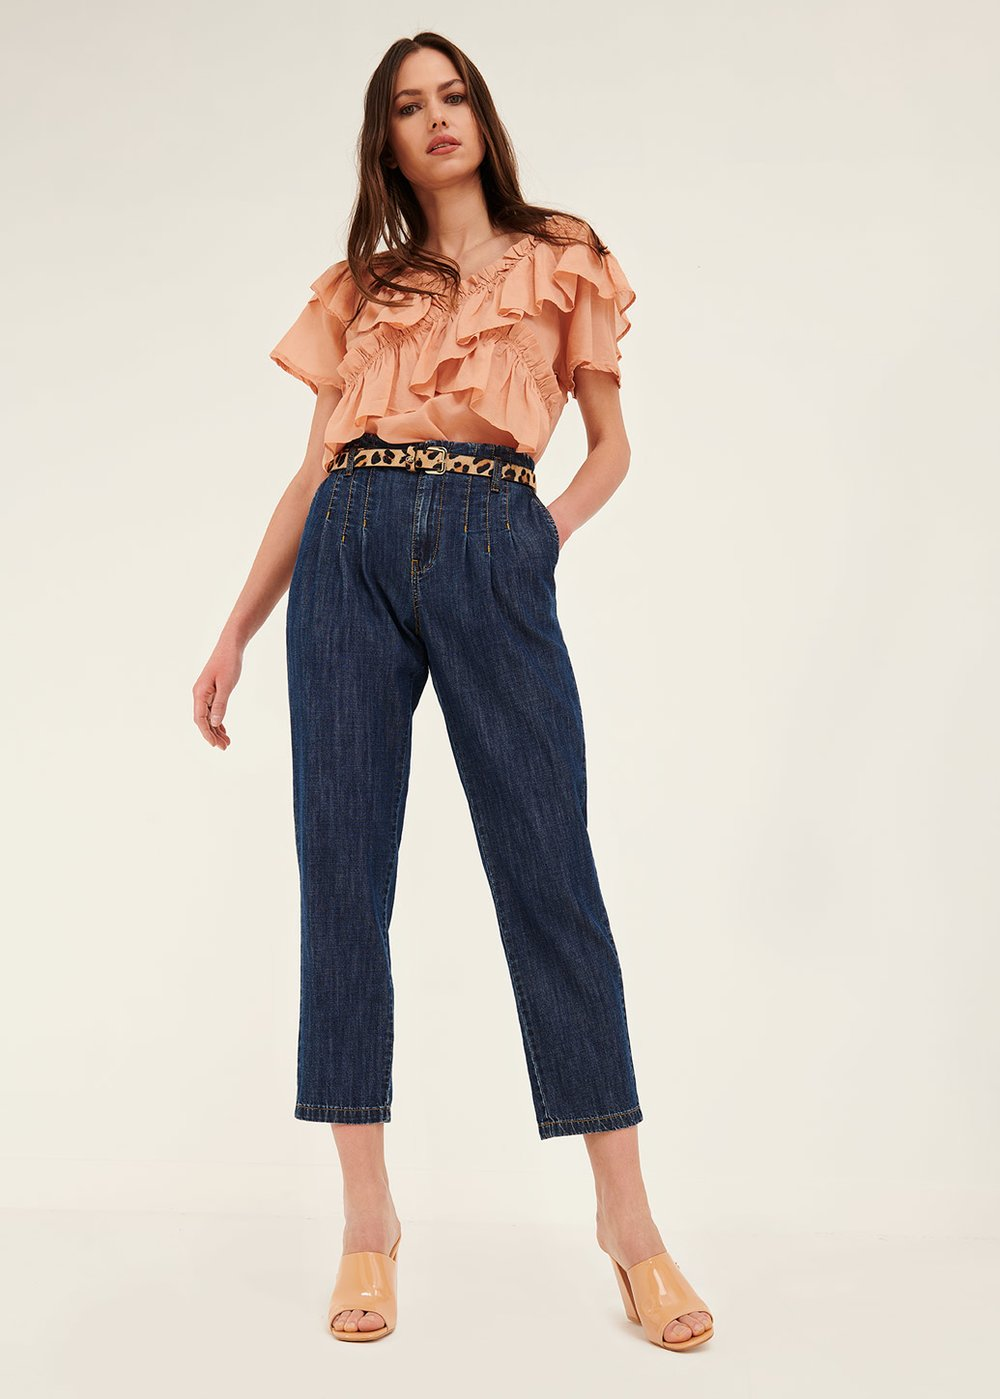 Dorys denims with topstitching - Light Blue - Woman